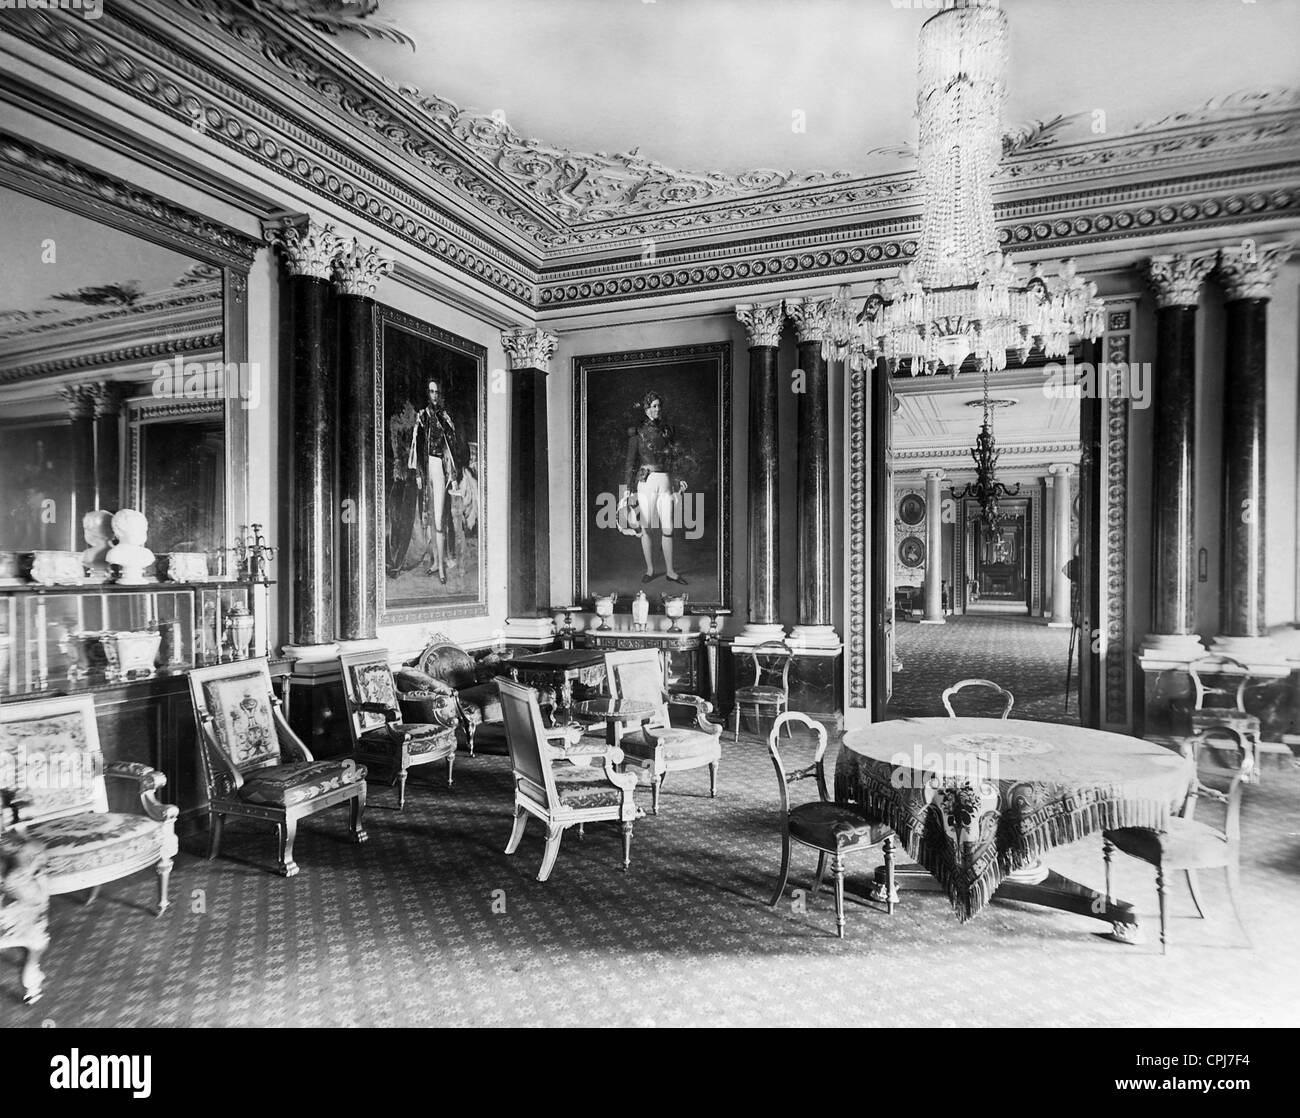 Inside View Of The Buckingham Palace, 1911   Stock Image